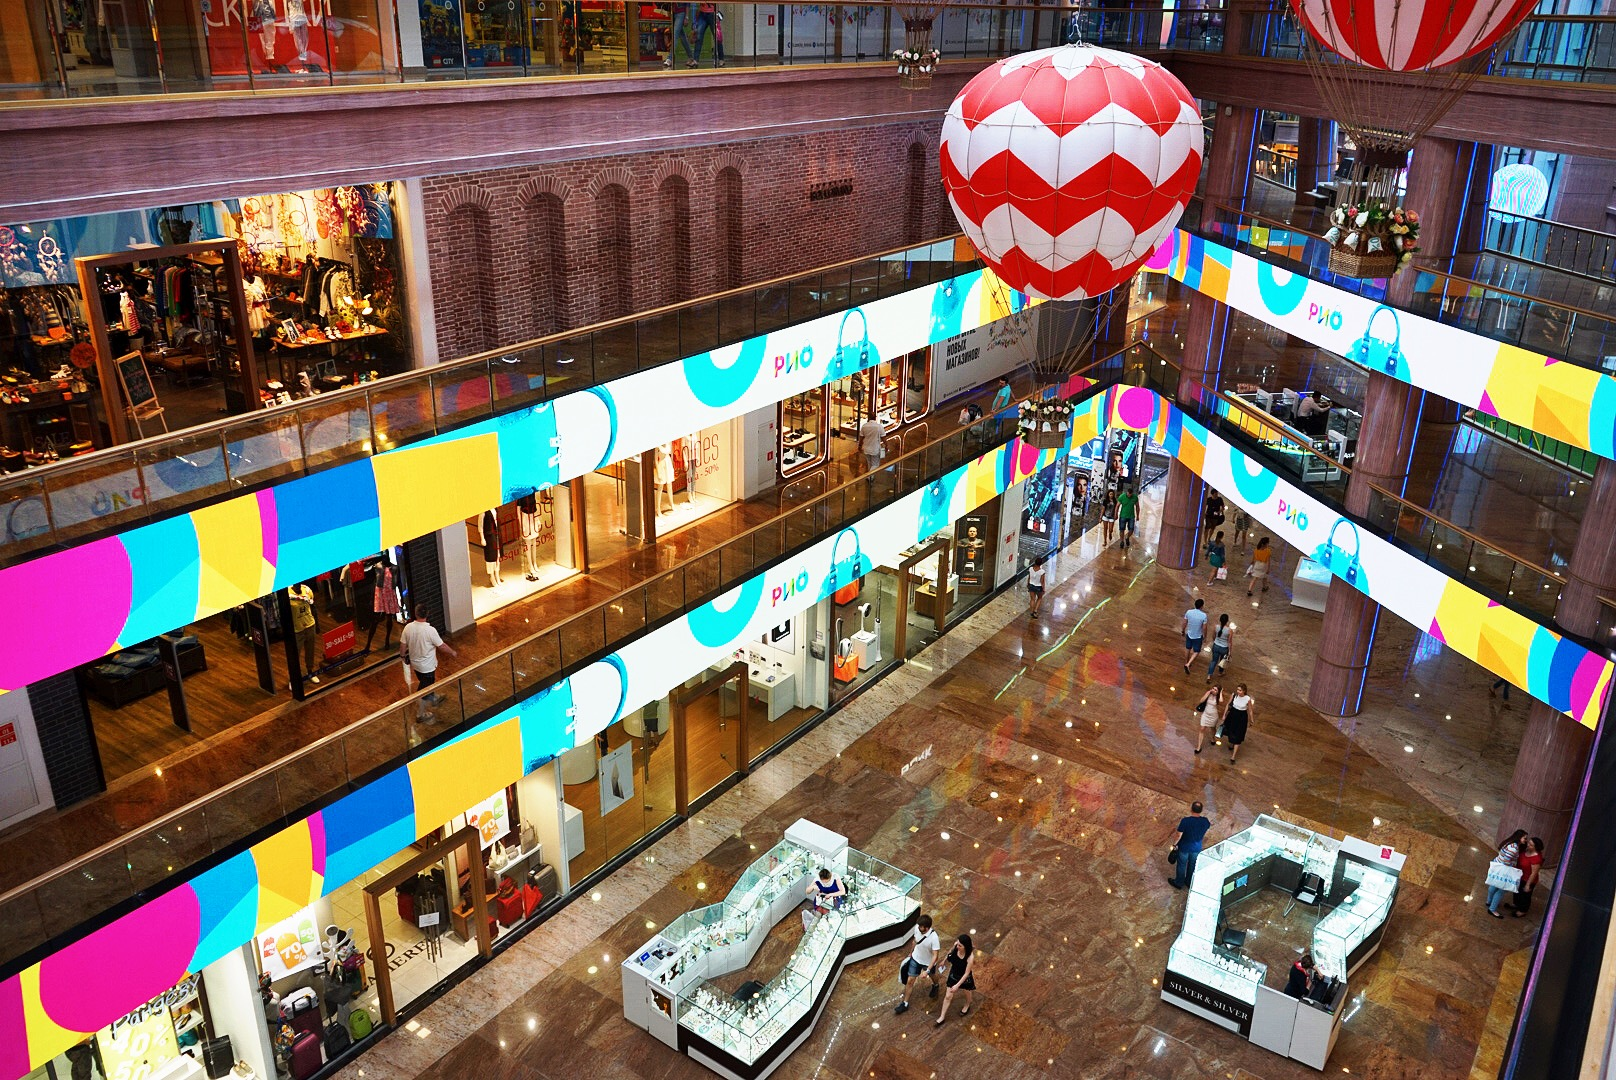 RIO Mall interior advertisments